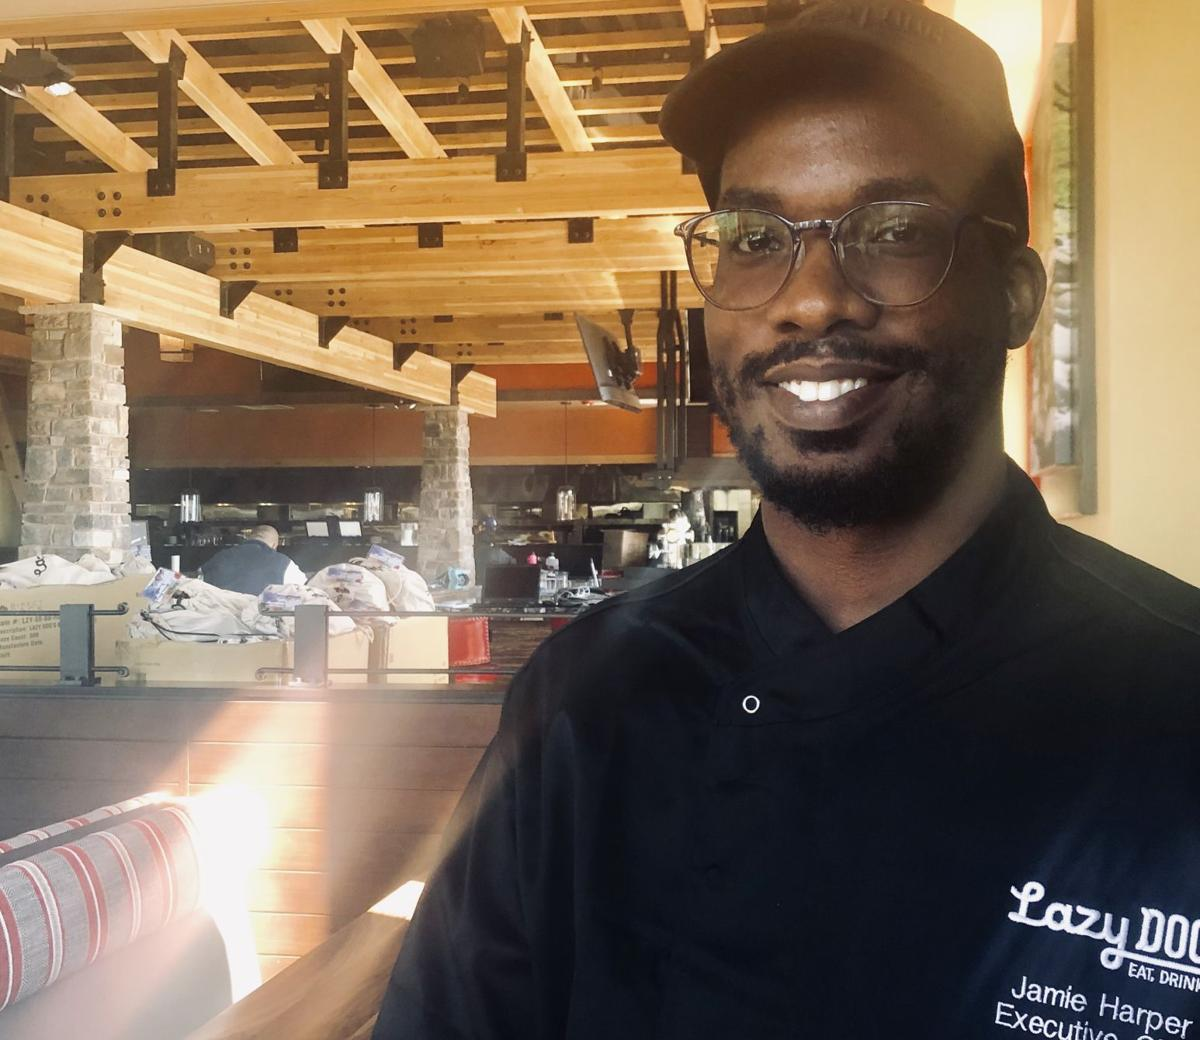 Colorado Springs welcomes Lazy Dog Restaurant and Bar